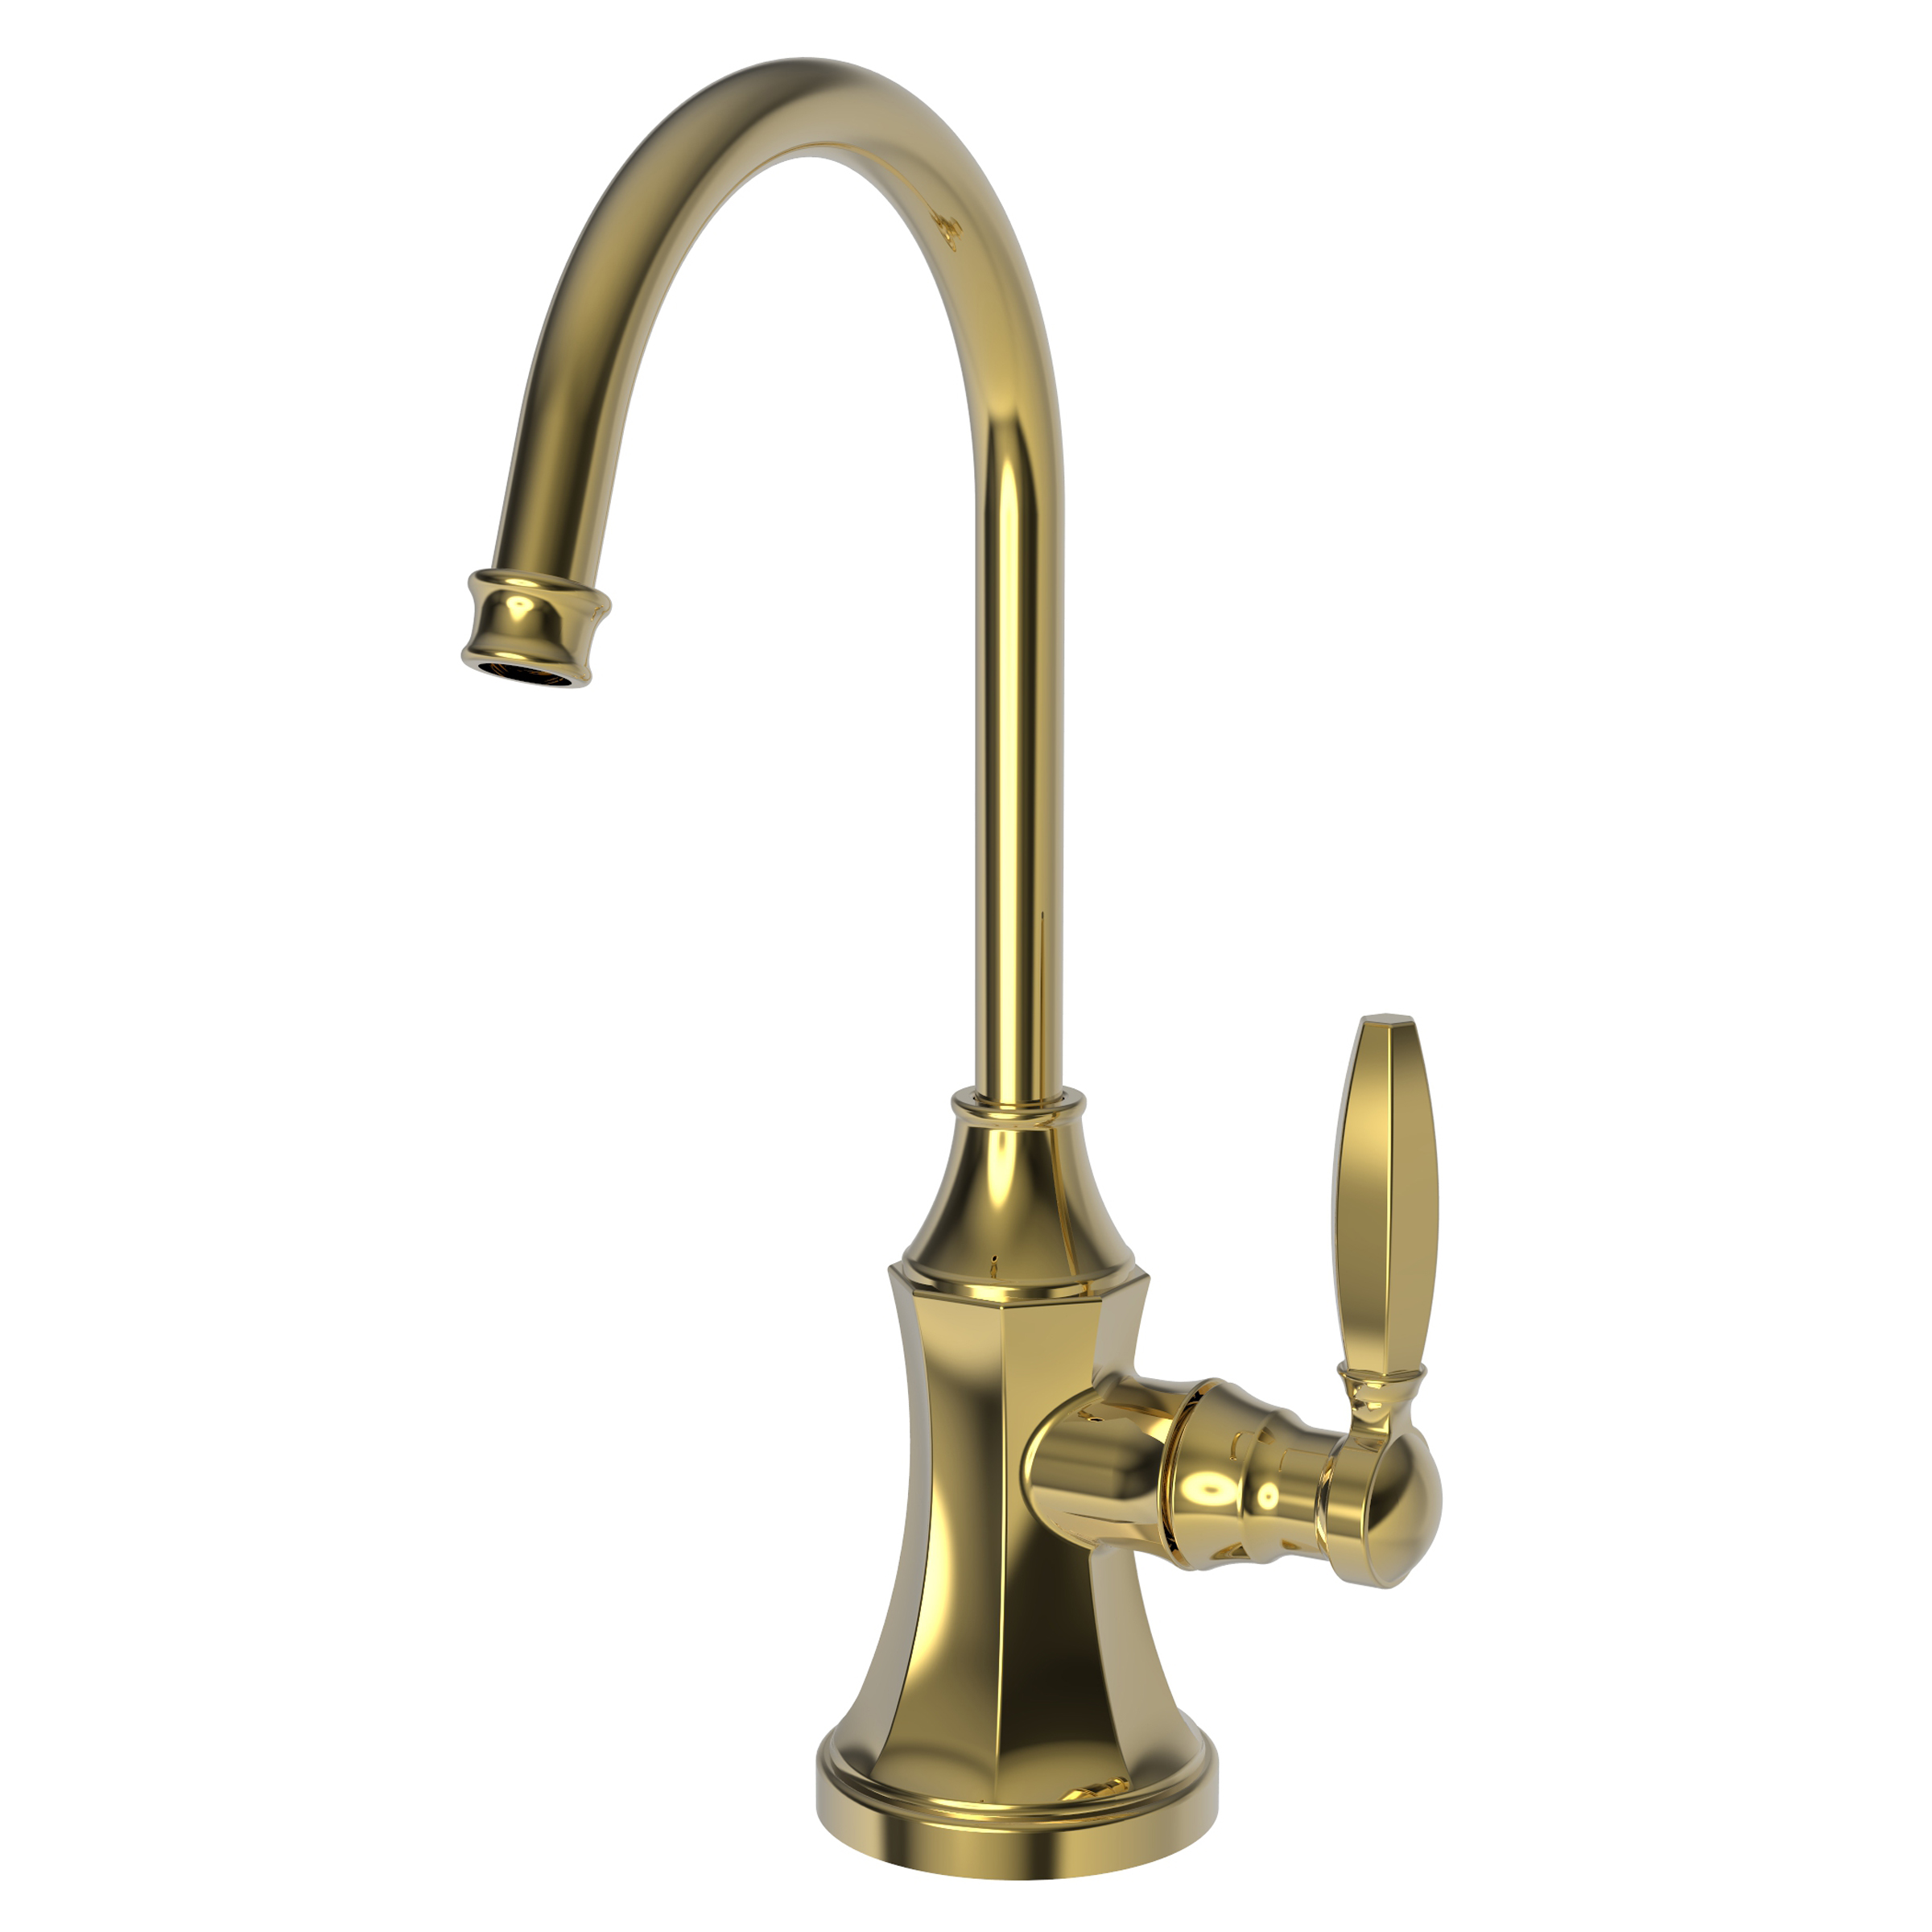 Newport Brass 1200 5623 Metropole 1200 5623 Cold Water Dispenser Faucet Newport Brass Faucets